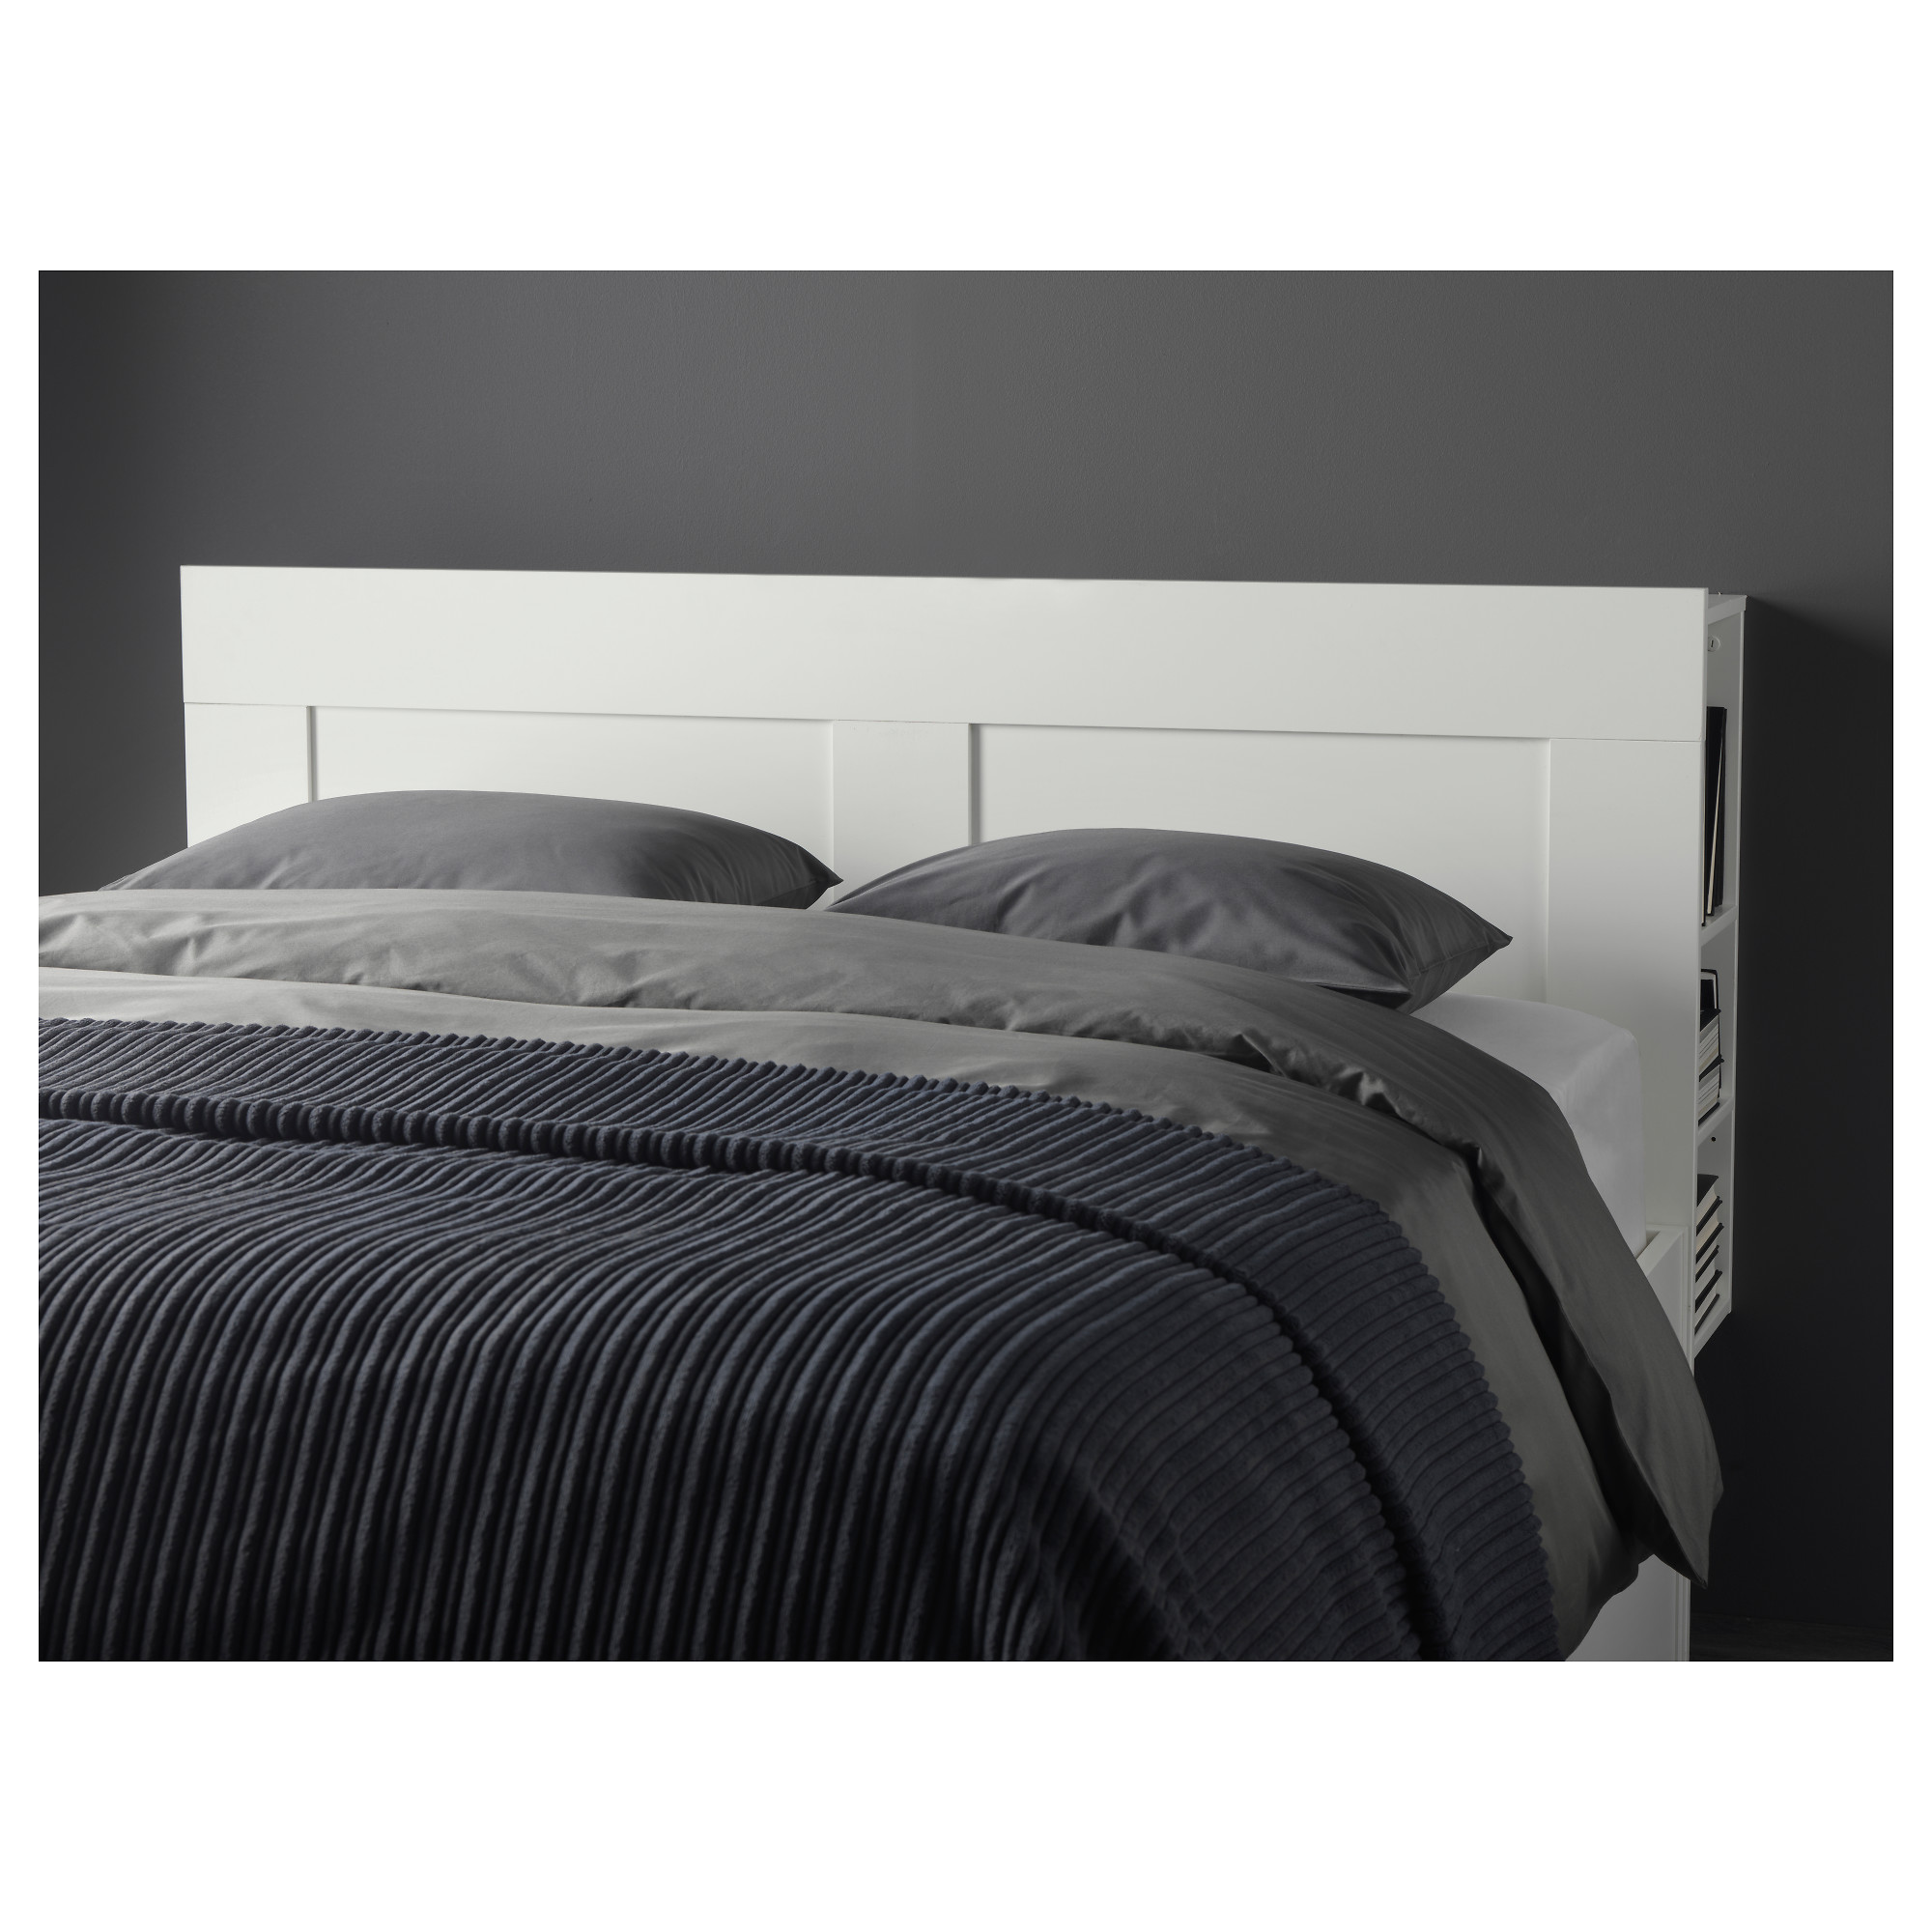 BRIMNES Headboard With Storage Compartment   Full/Double   IKEA